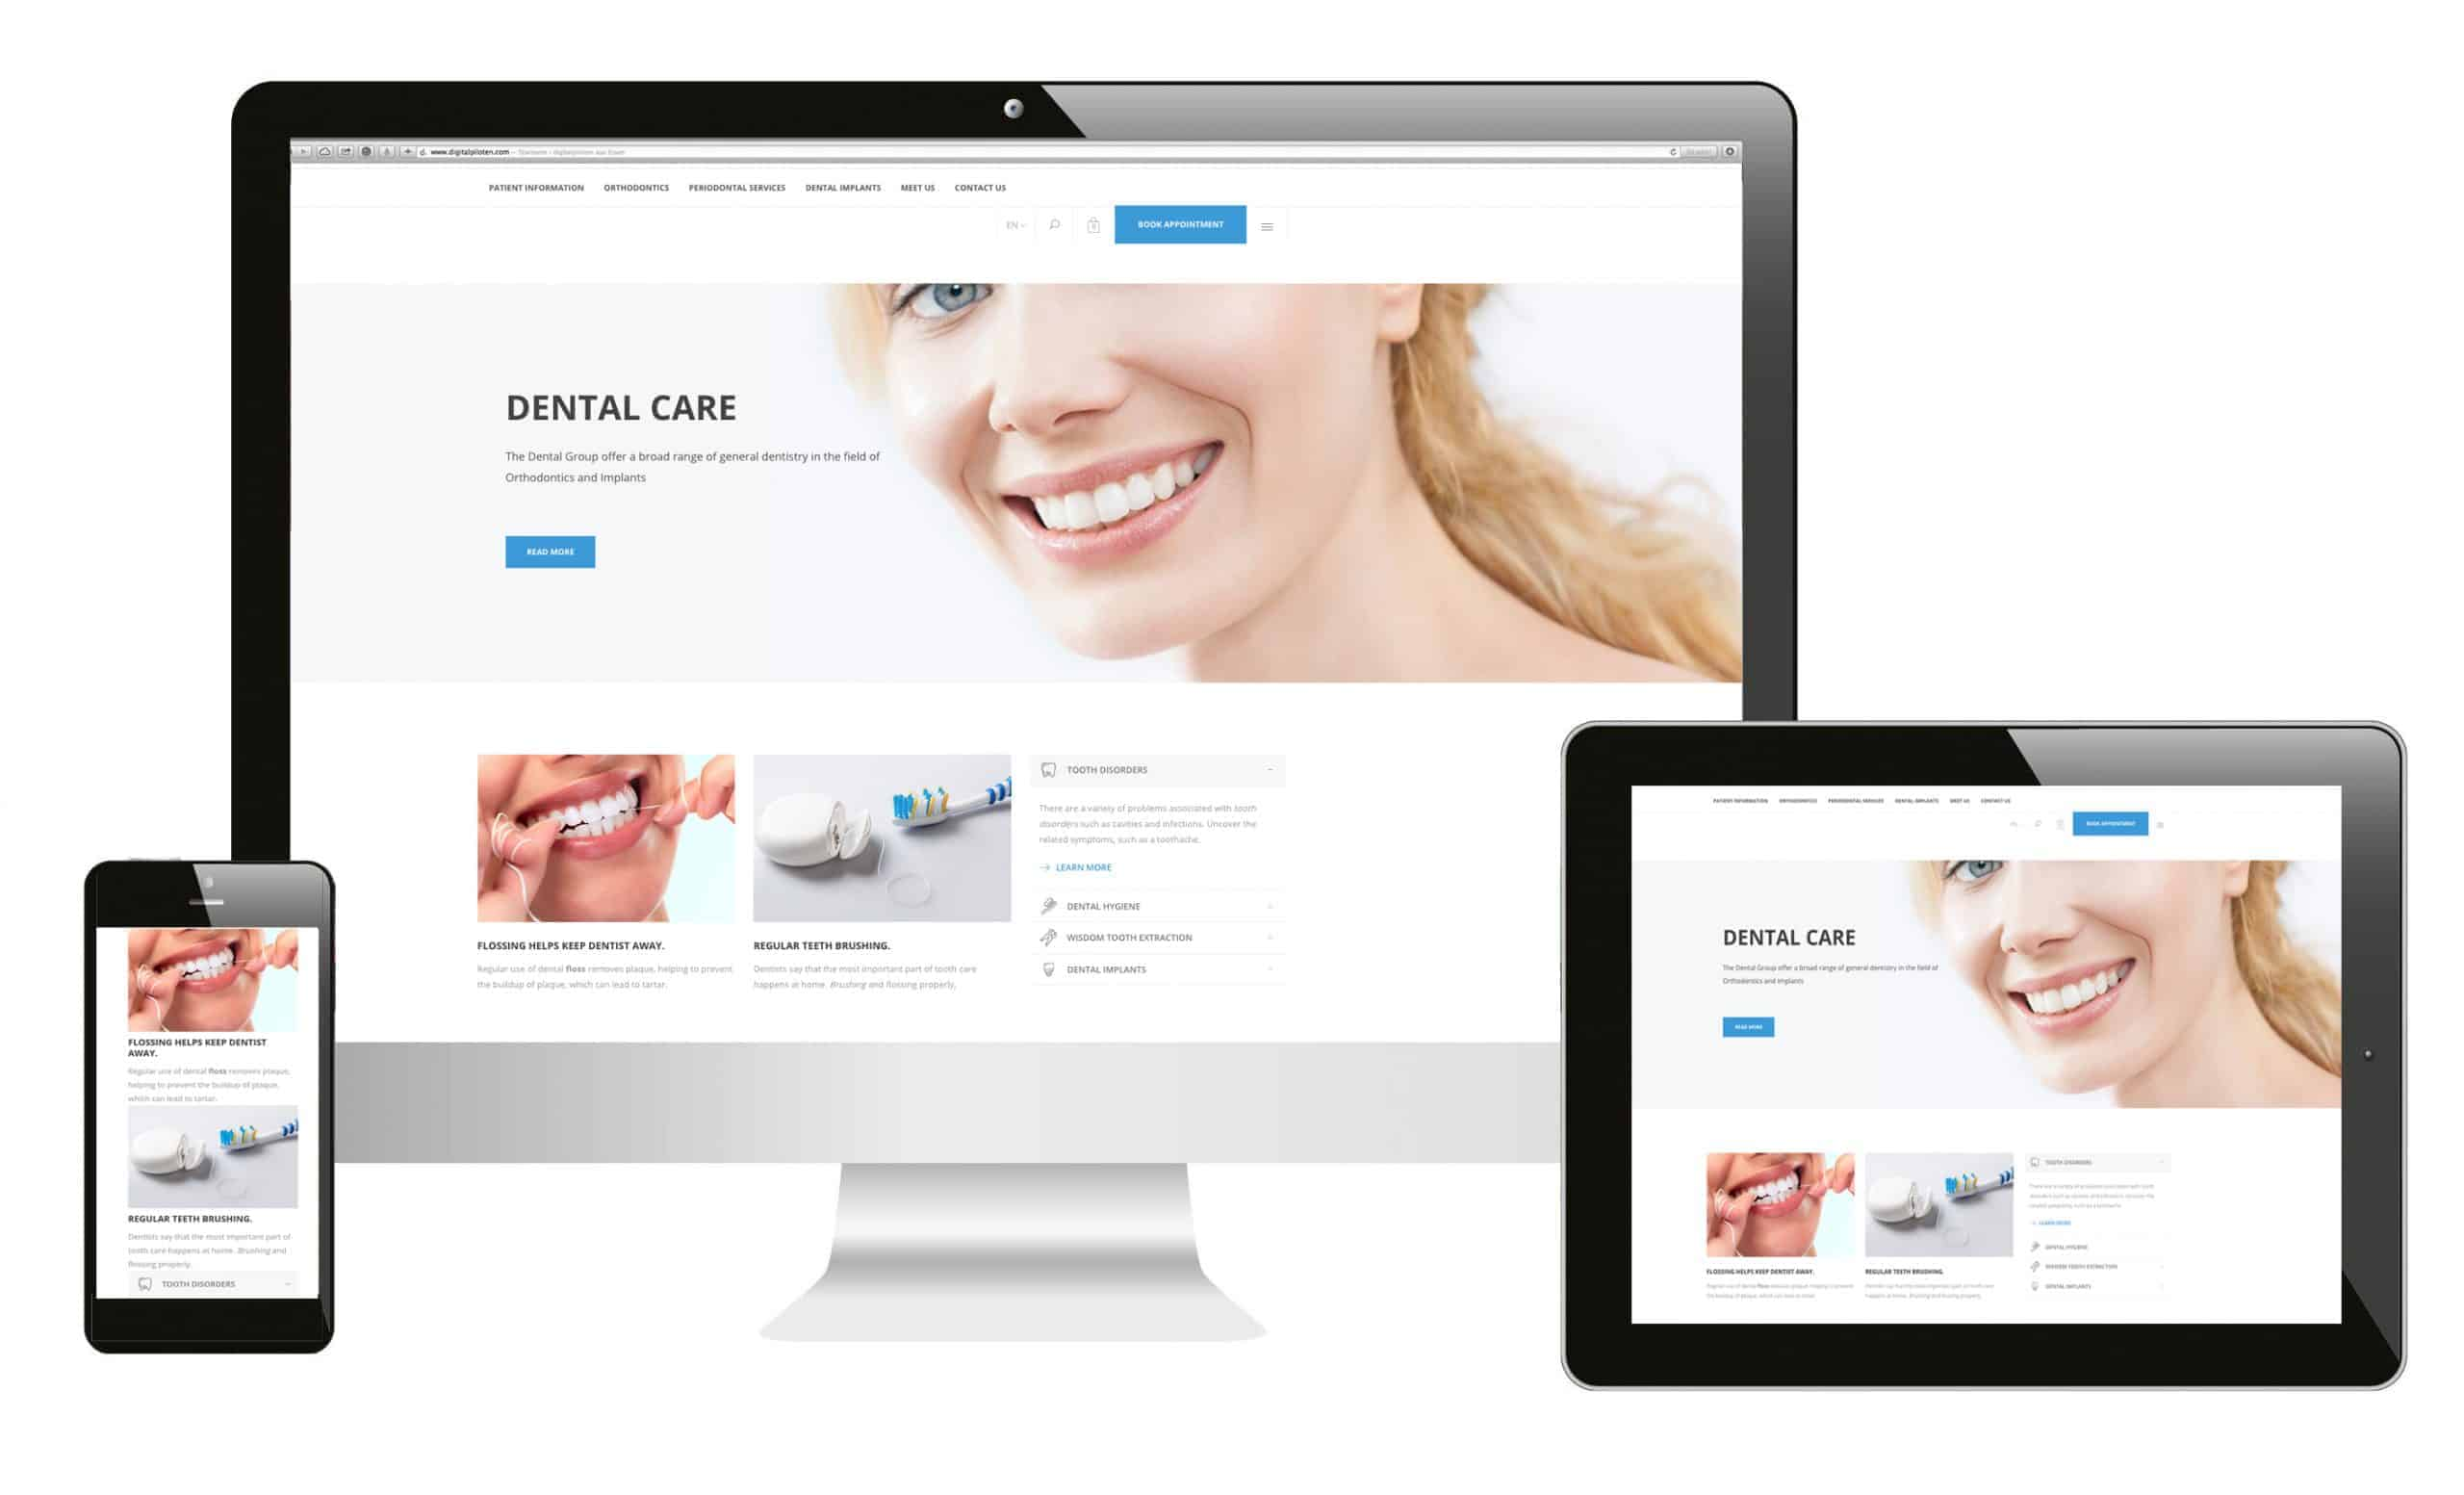 //360webmazing.com/webmazing_uploads/2019/11/dental-website-design-responsive.jpg cbd online store - got-a cbd CBD Online Store – got-a CBD dental website design responsive